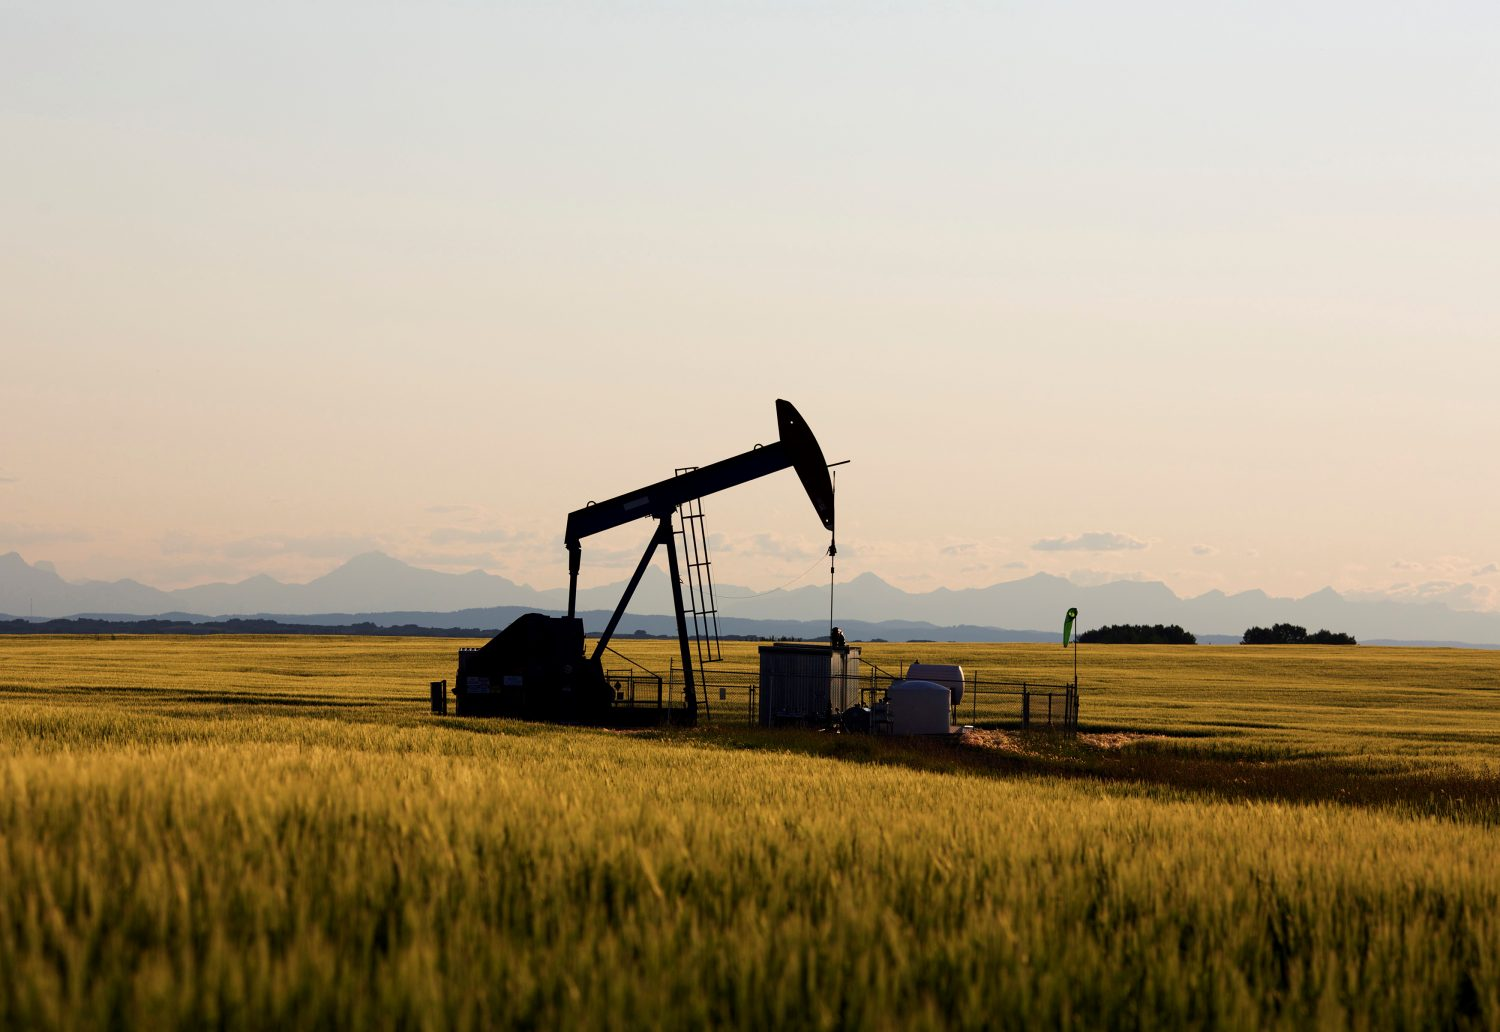 FILE PHOTO: An oil pump jack pumps oil in a field near Calgary, Alberta, Canada, July 21, 2014. REUTERS/Todd Korol/File Photo